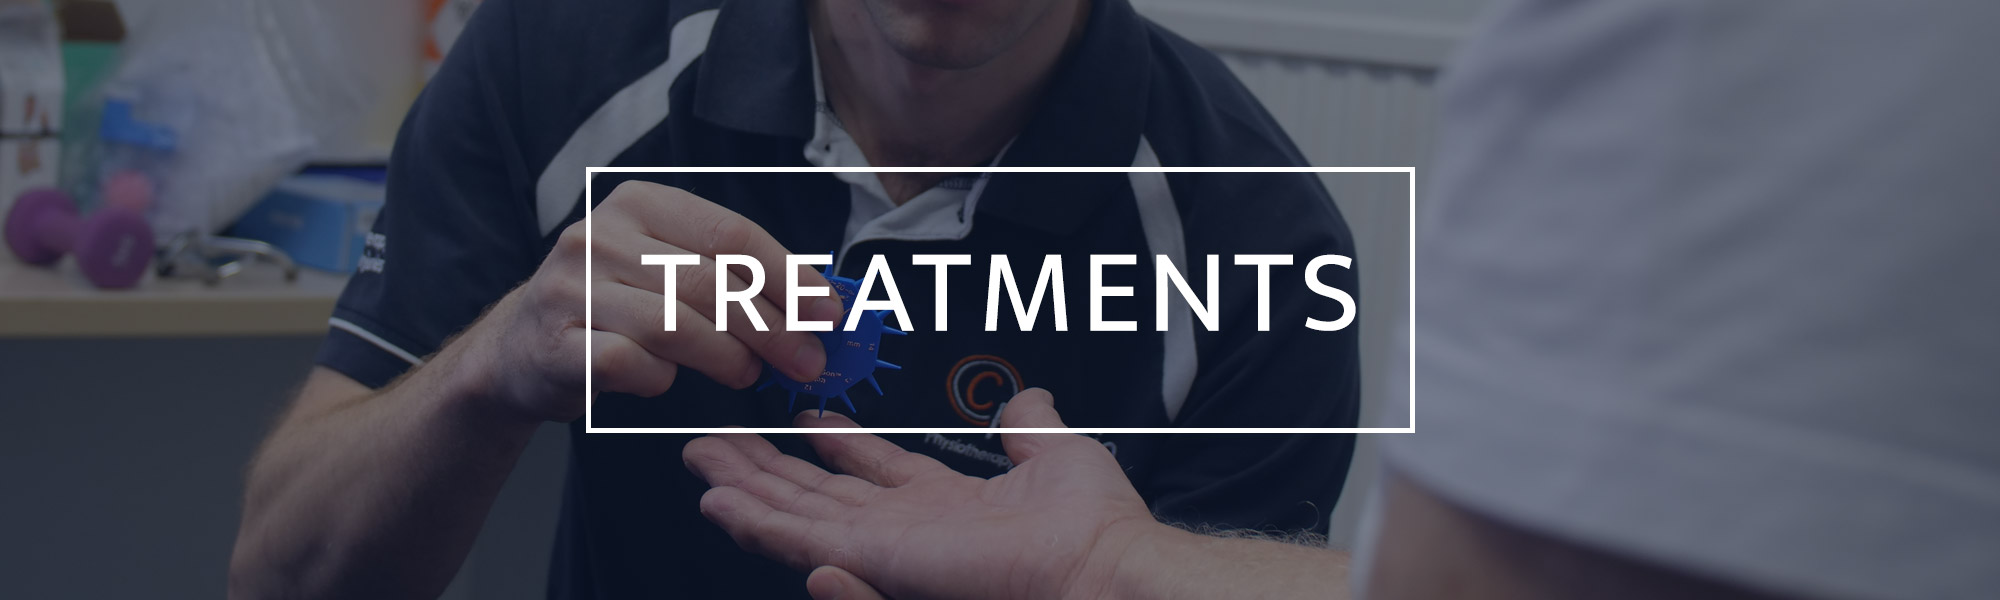 Treatments Header 2